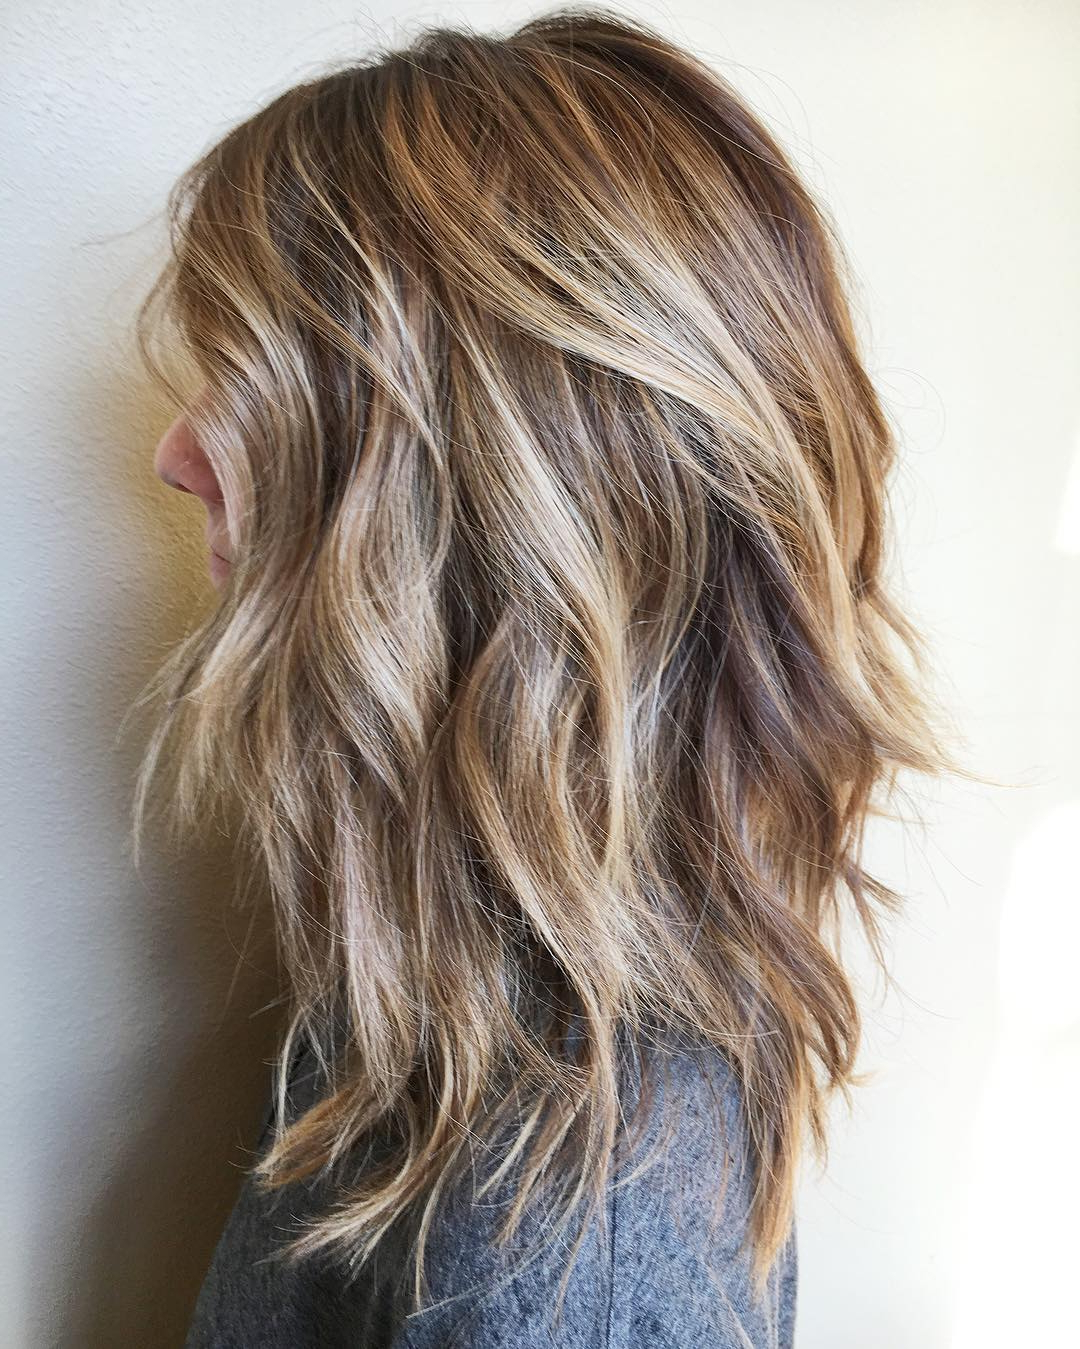 10 Messy Medium Hairstyles For Thick Hair 2019 In Most Recent Layered Shaggy Medium Hairstyles (View 1 of 20)